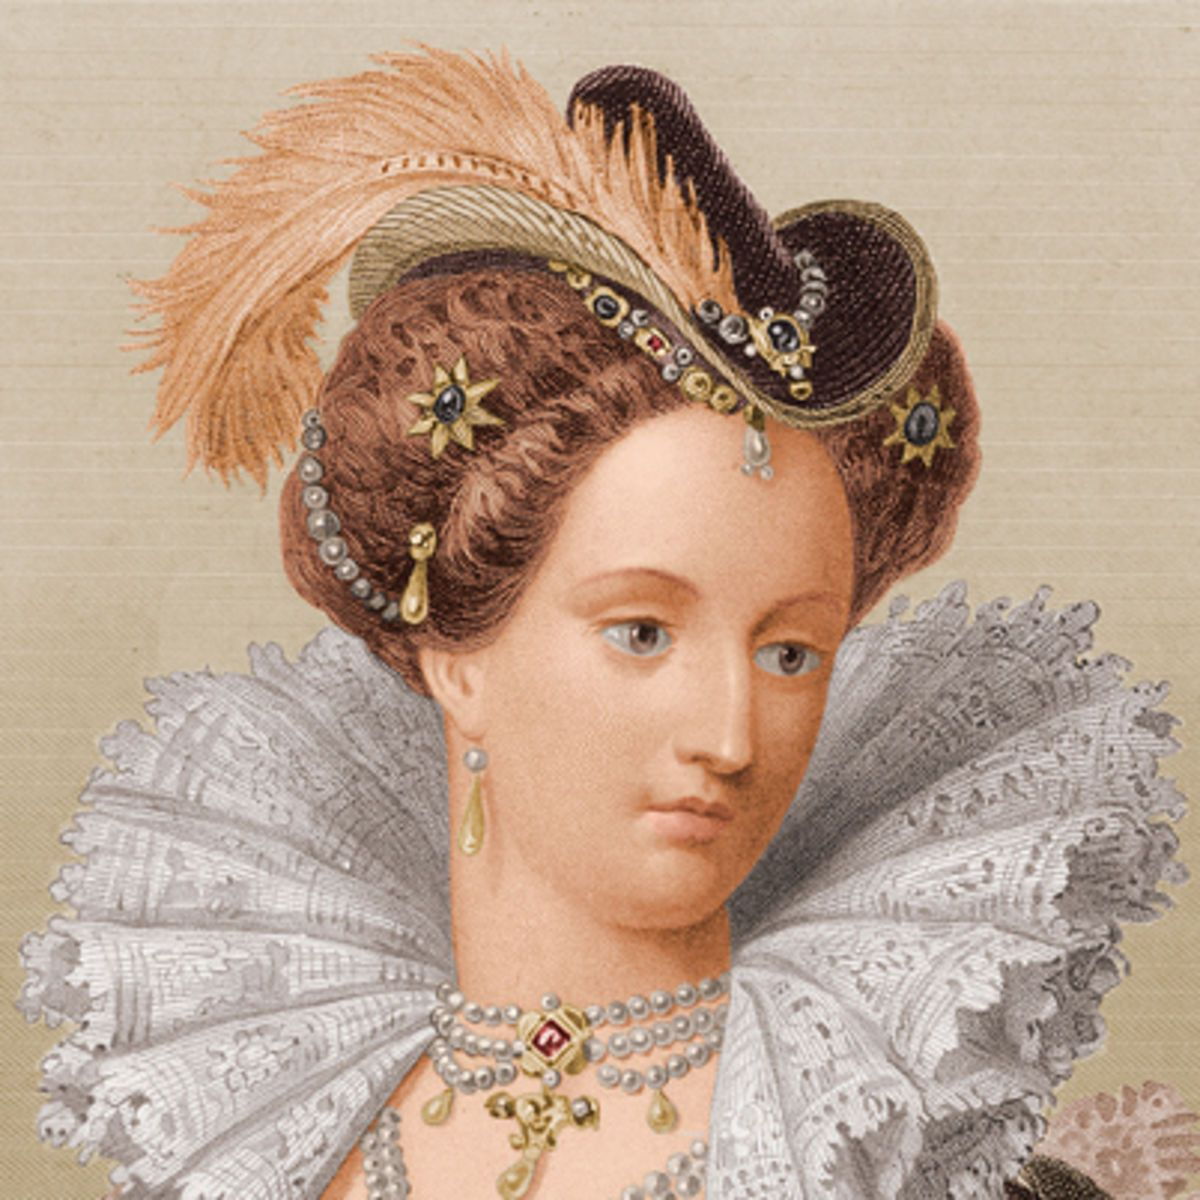 Biographical information about Queen Elizabeth I, daughter